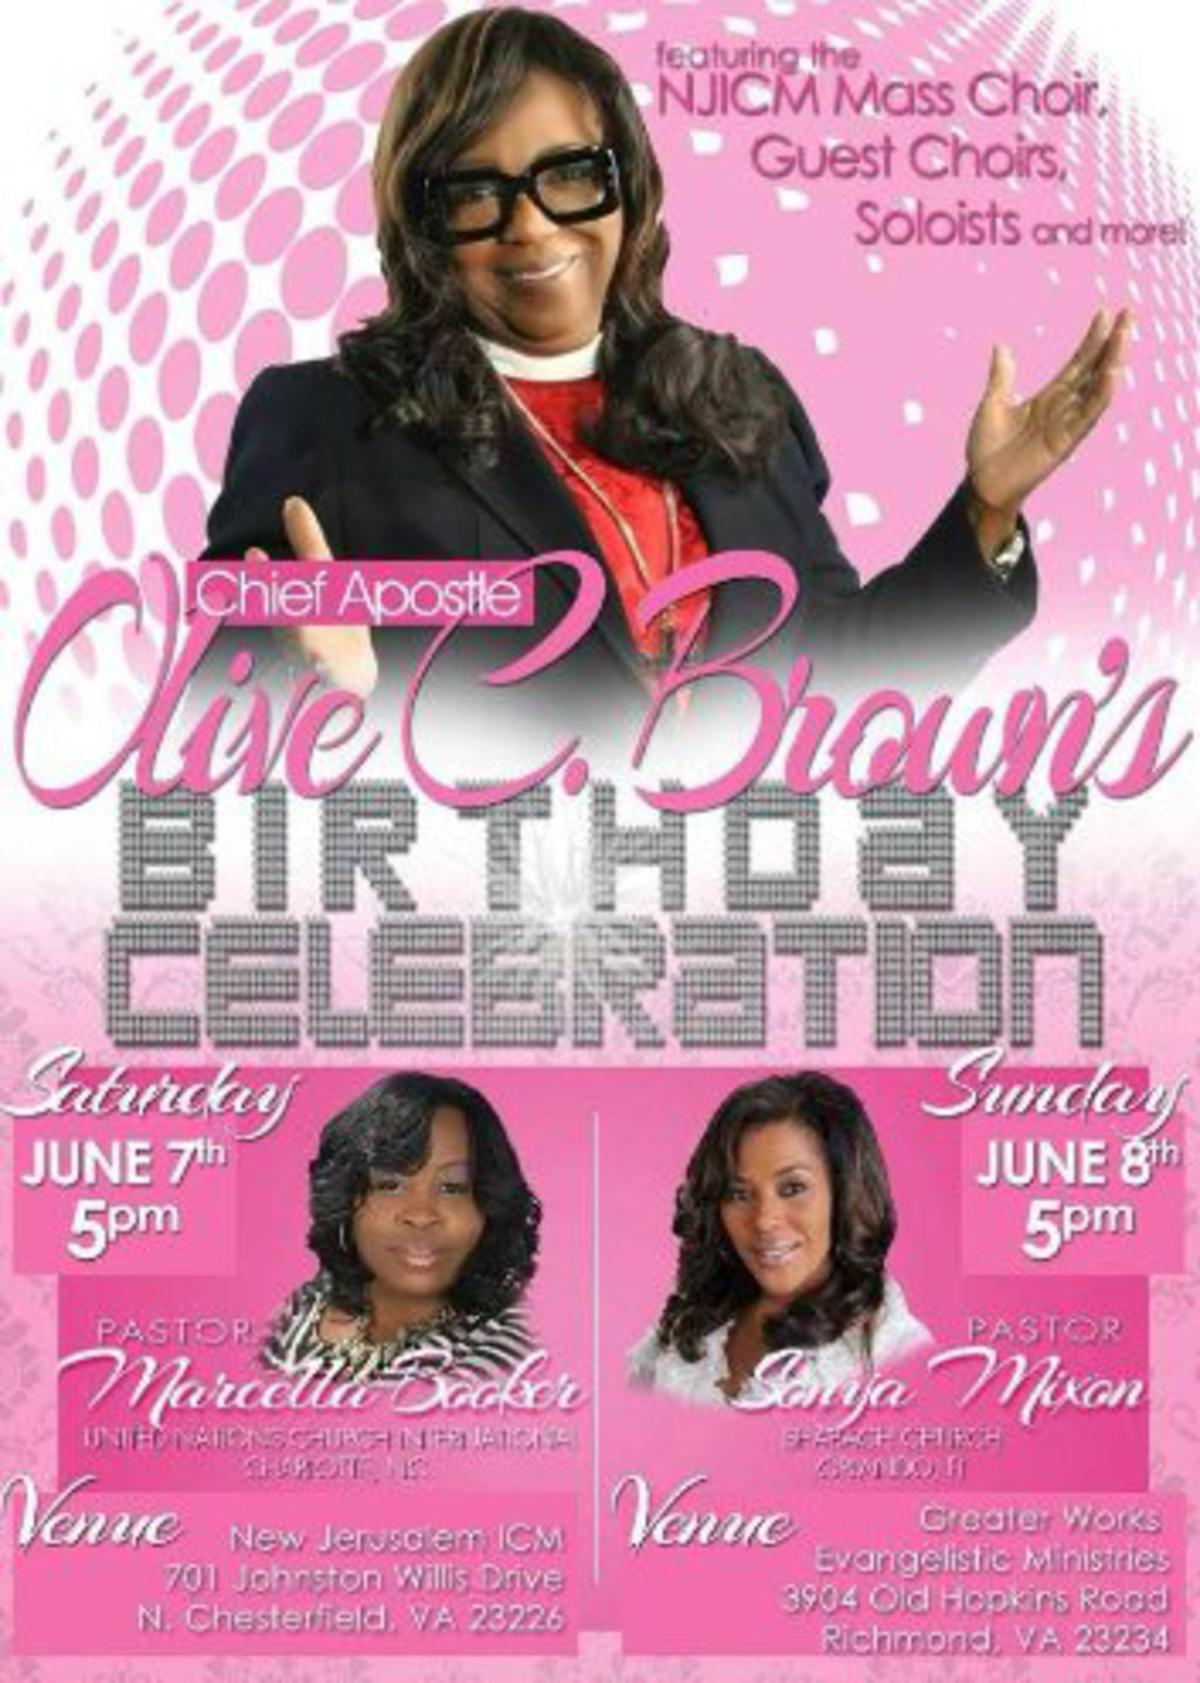 Birthday Celebration for Chief Apostle Olive C. Brown